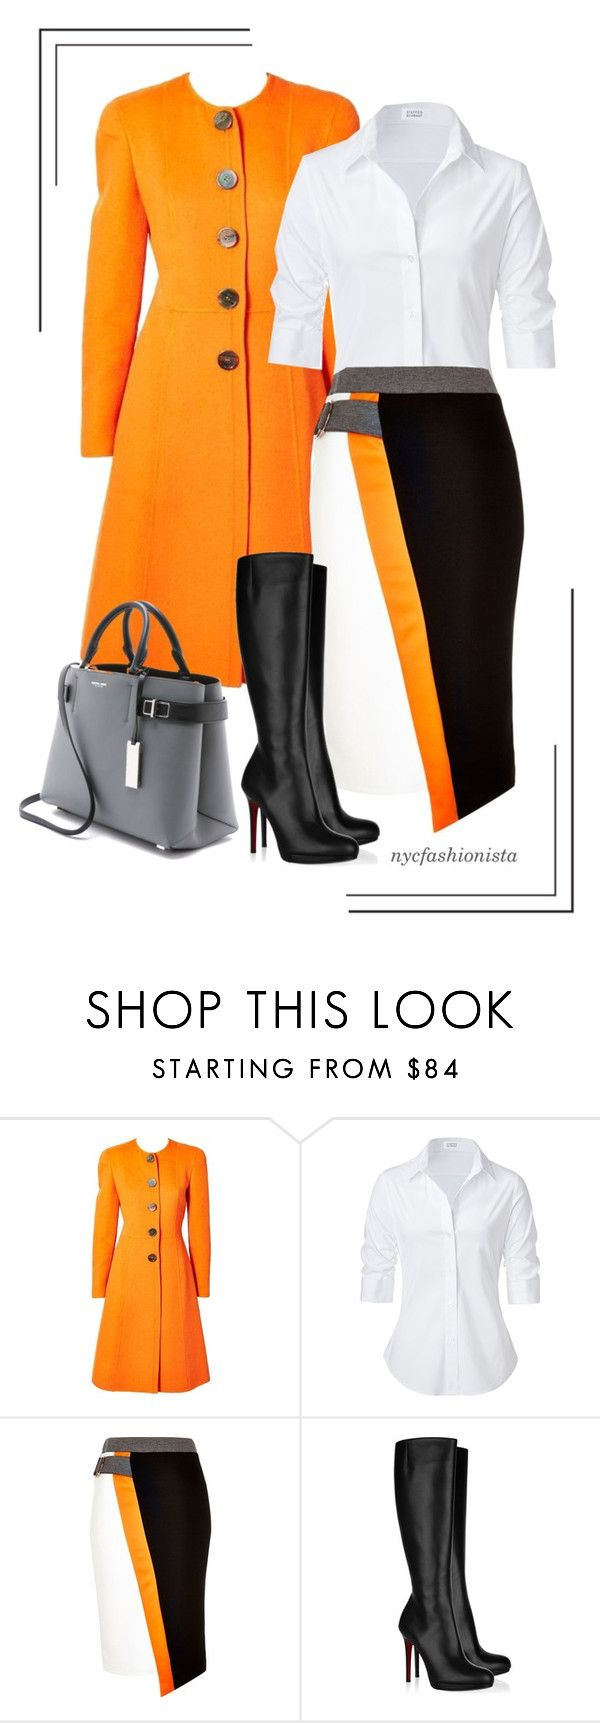 """""""Orange Crush"""" by nycfashionista ❤ liked on Polyvore featuring Valentino, Steffen Schraut, River Island, Christian Louboutin and Michael Kors"""